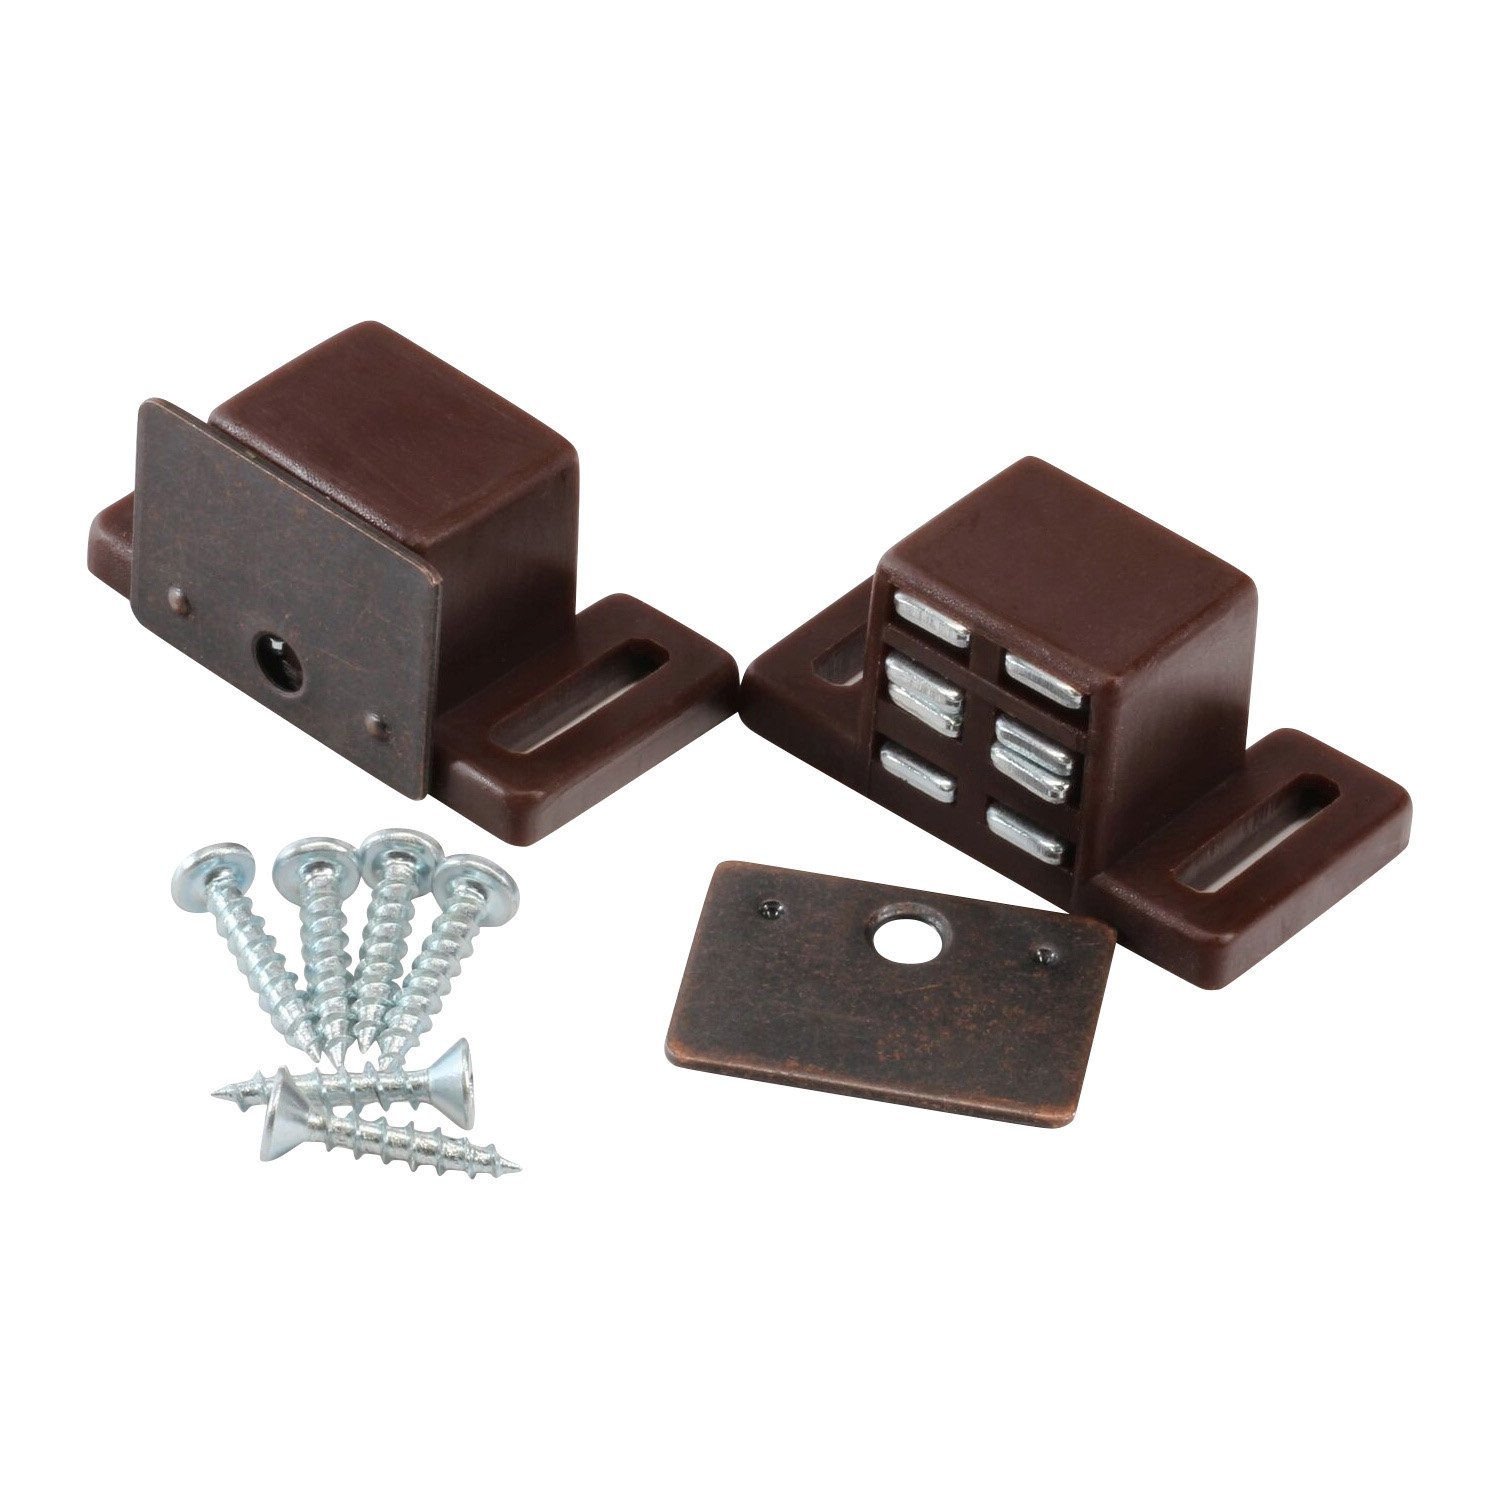 Rok Hardware Heavy Duty 15 lb High Magnetic Cabinet Door Catch Latch, Brown, (10 Pack)